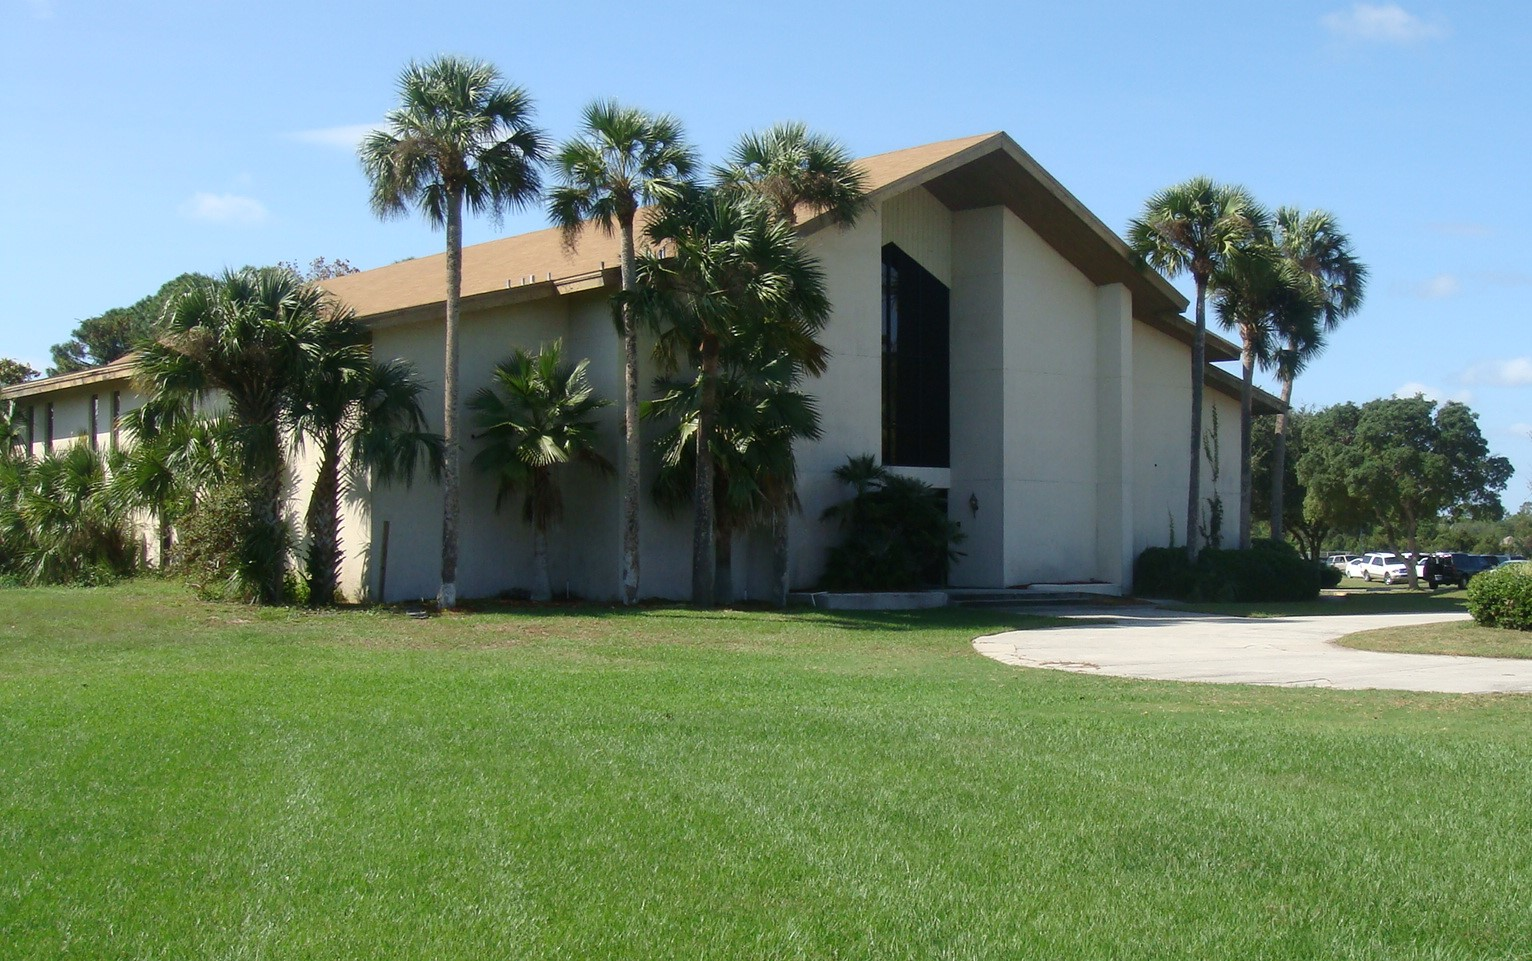 Photo of Cornerstone Community Center from an angle, showing its entrance surrounded by green grass and palm trees